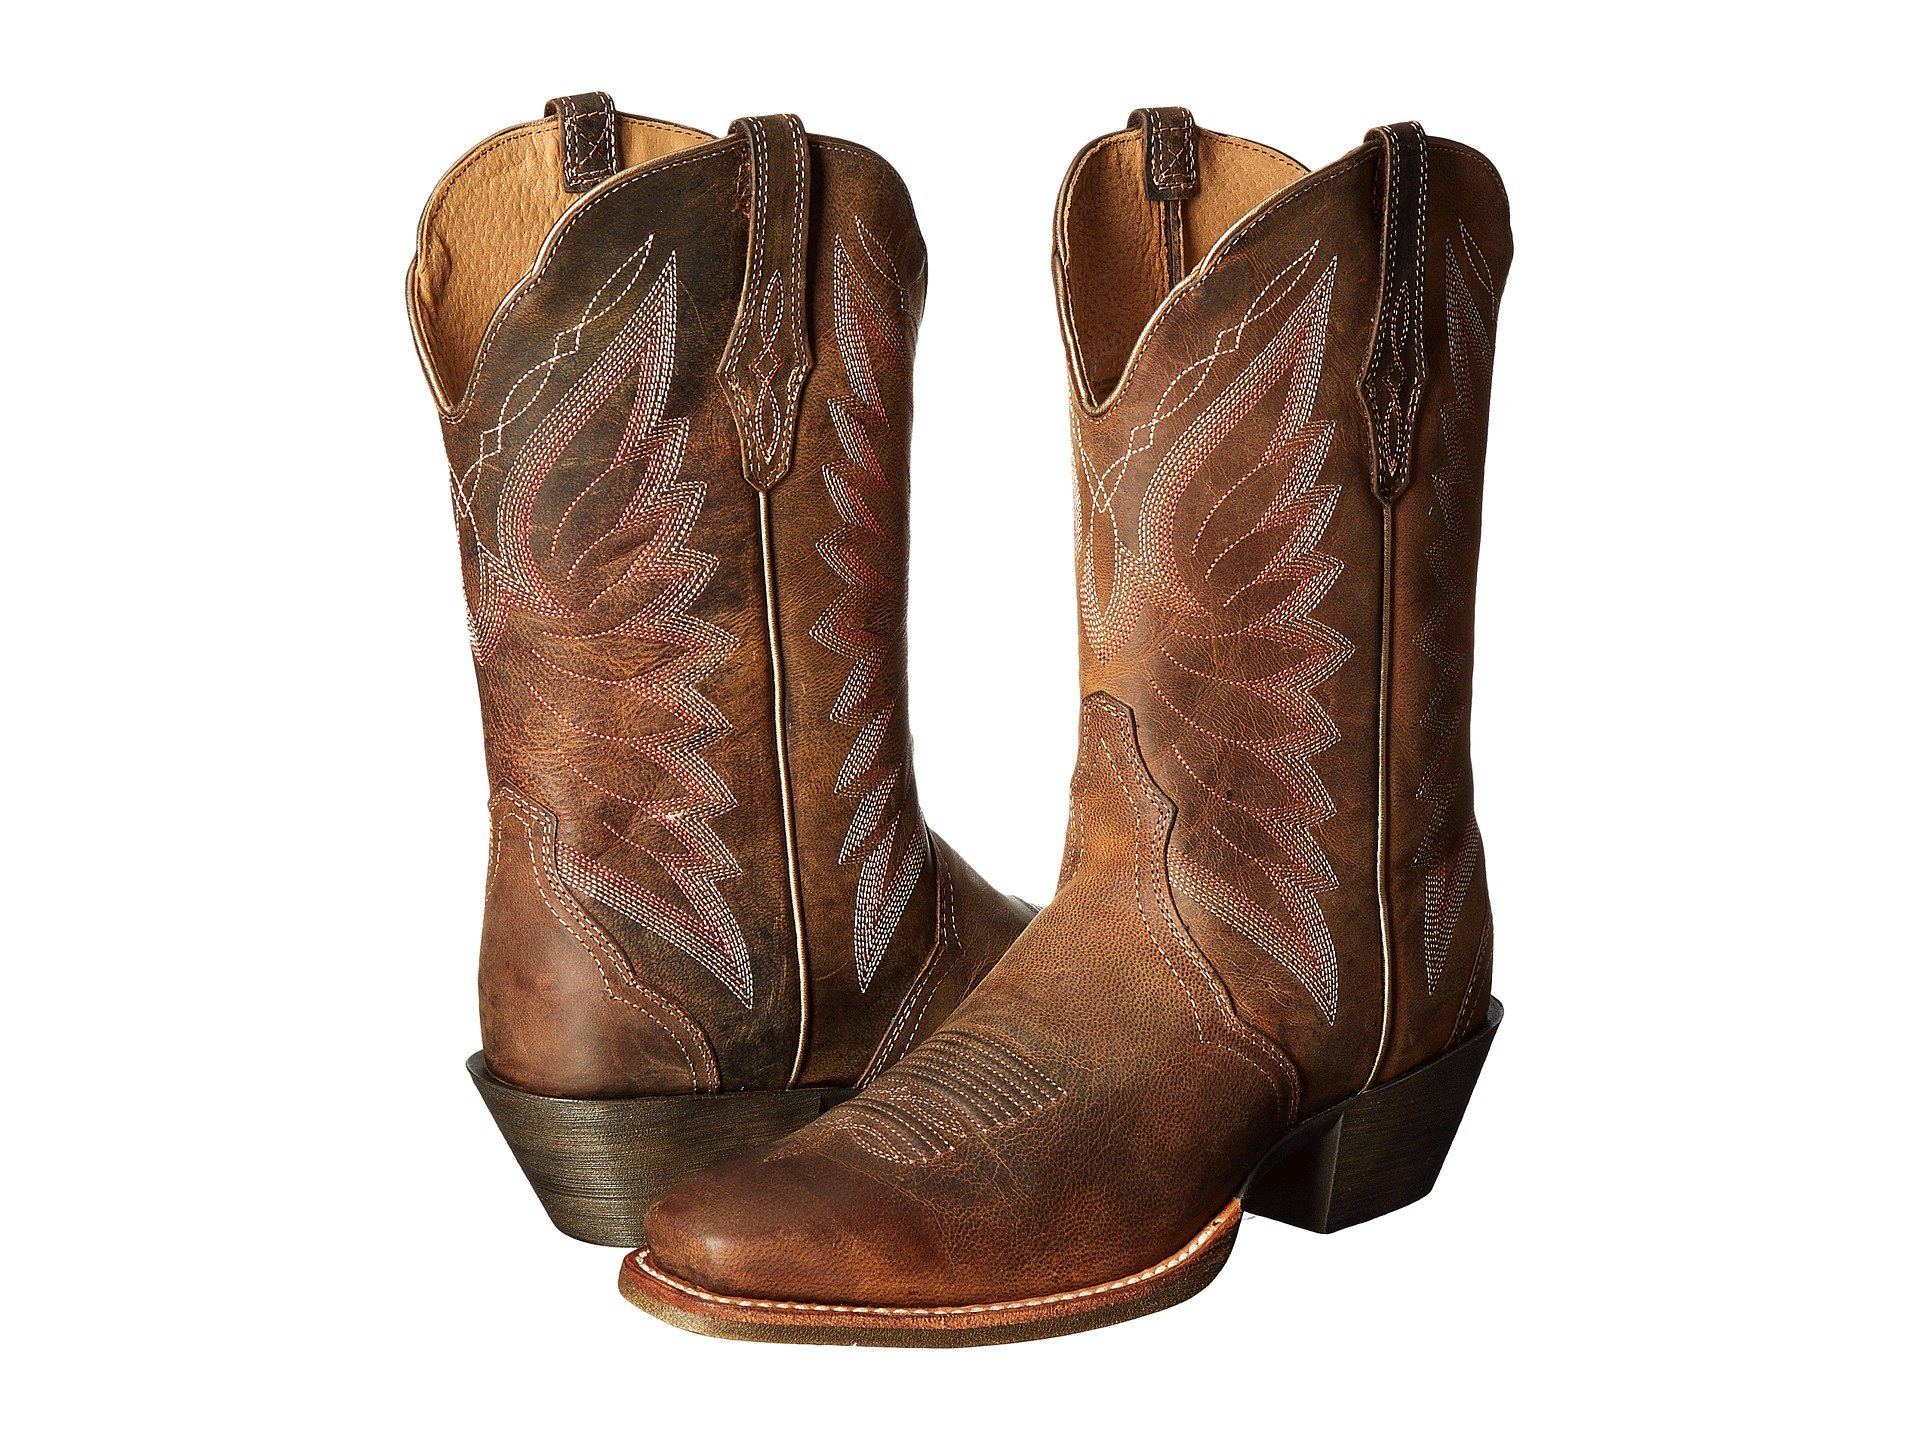 154117270c0 Women s Ariat Boots + FREE SHIPPING